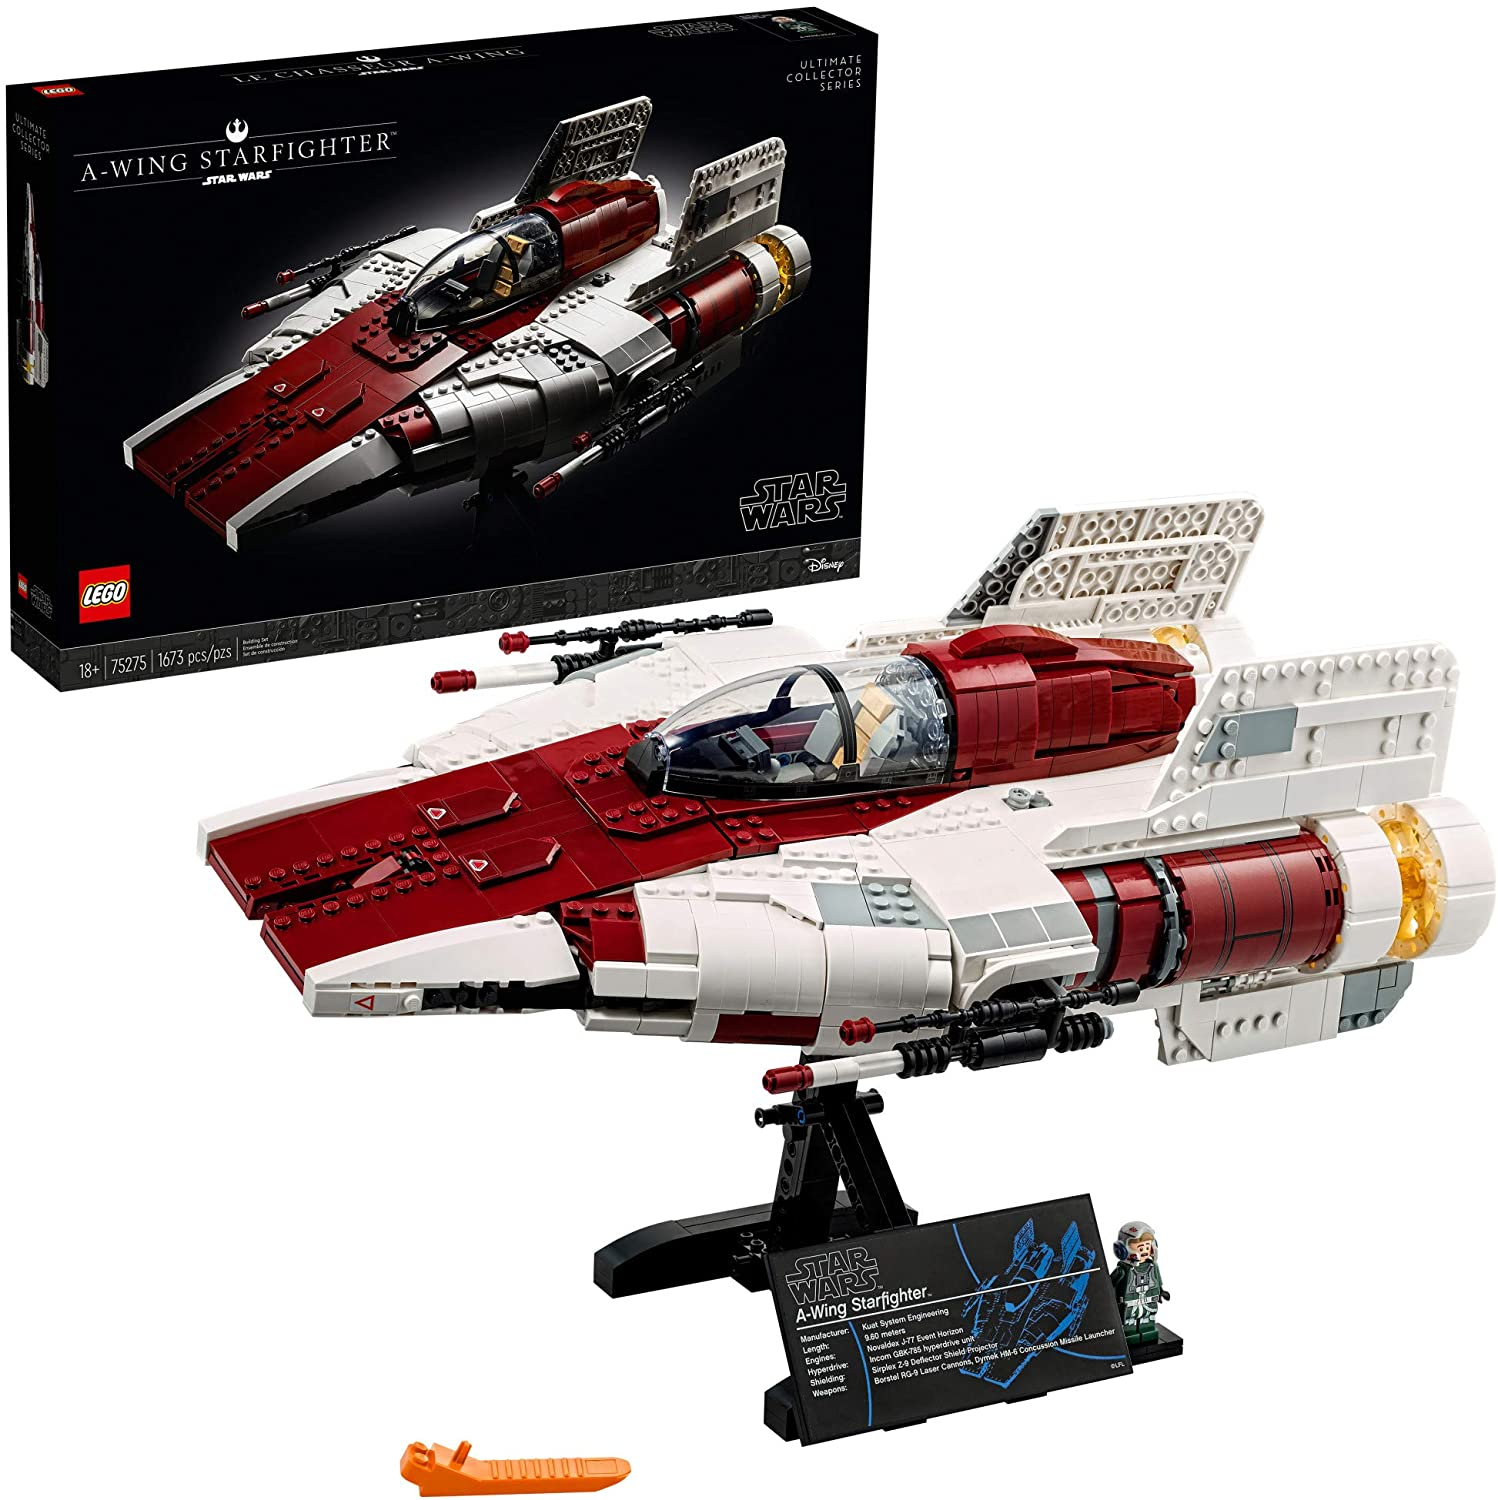 lego-star-wars-a-wing-starfighter-75275-building-kit-collectible-building-set-for-adults-makes-a-cool-birthday-for-star-wars-fans-new-2020-1673-pieces-2021-3-19